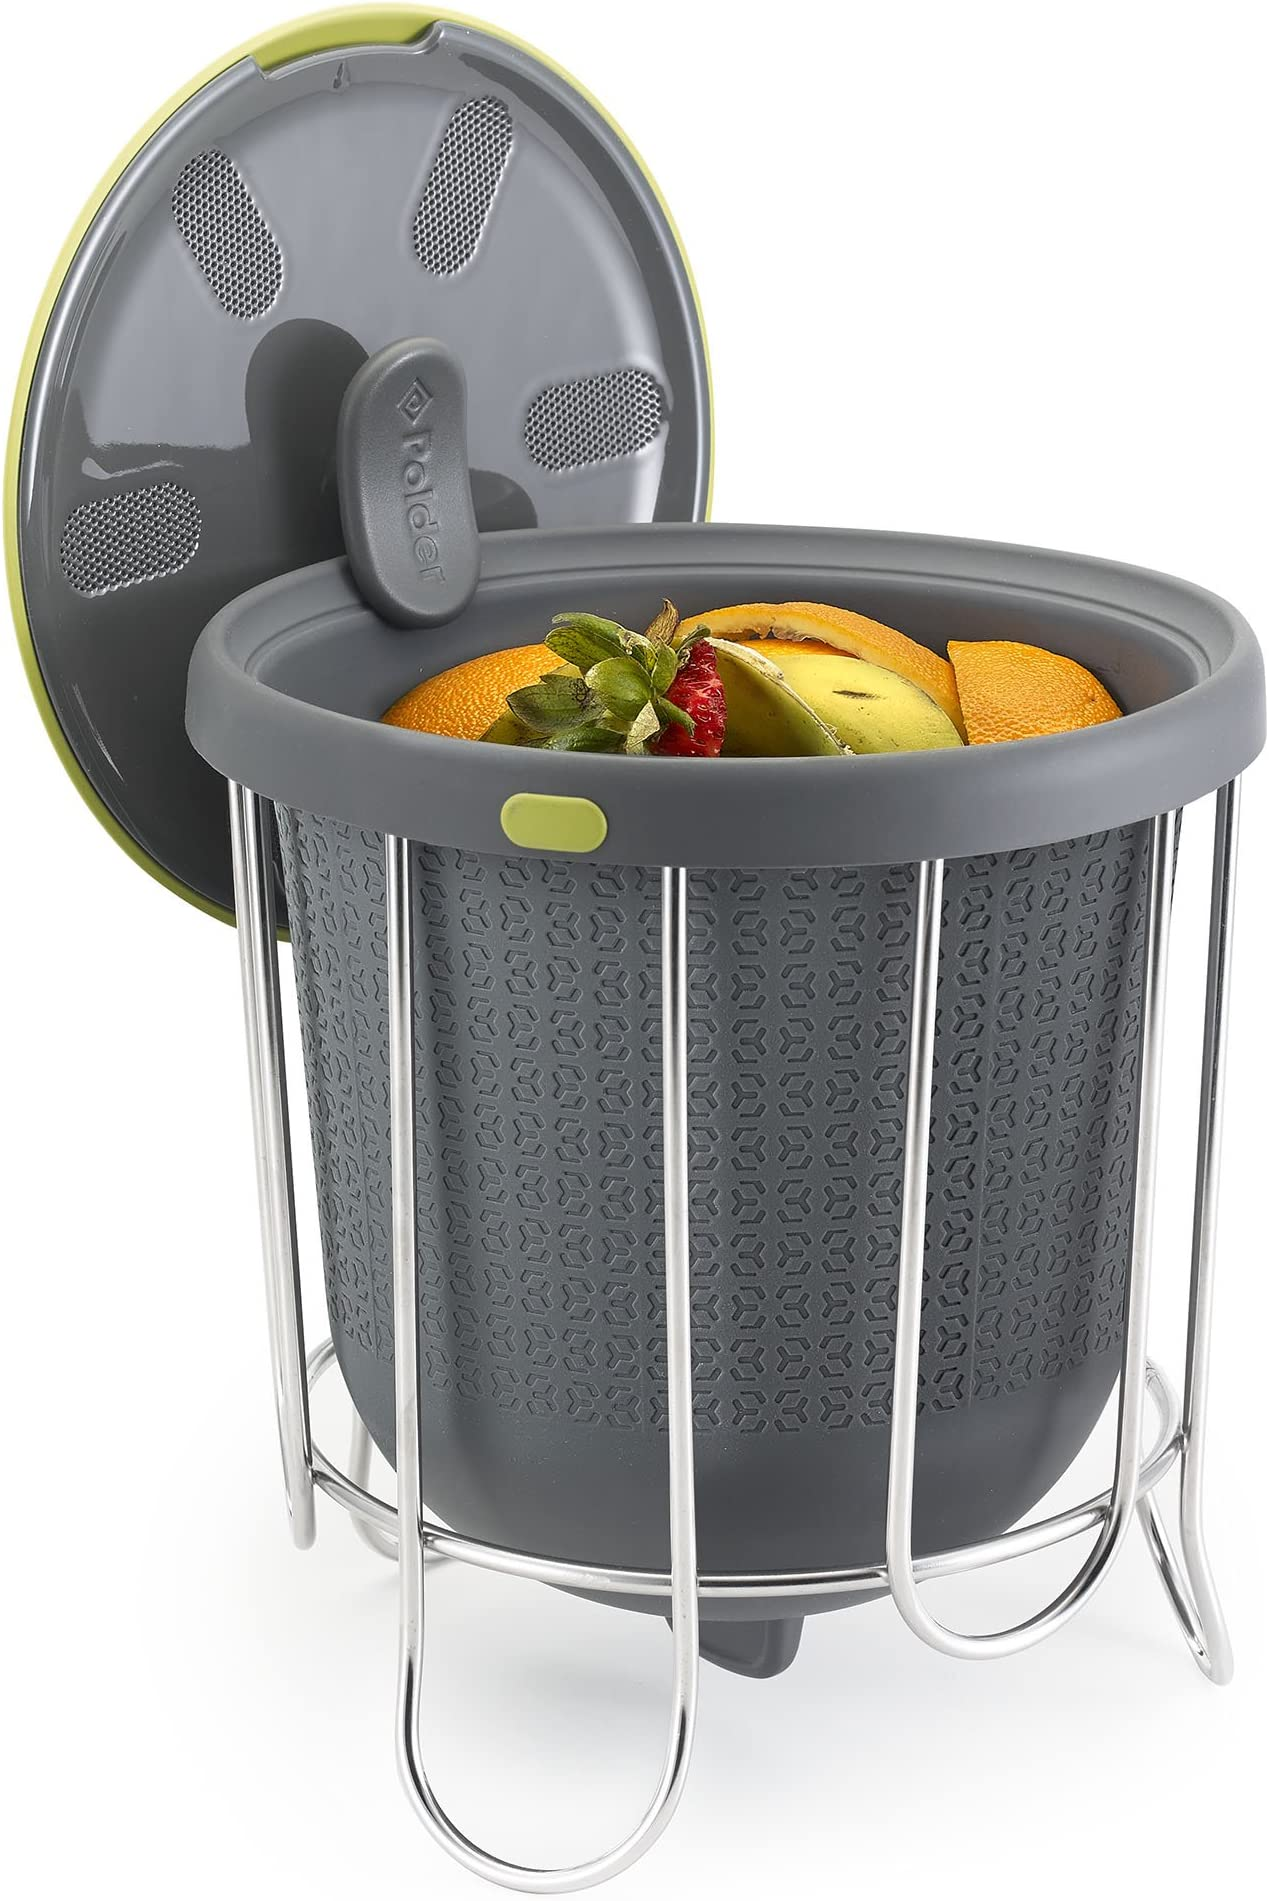 Polder Kitchen Composter-Flexible silicone bucket inverts for emptying and cleaning - no need to touch contents- adjustable lid for ventilation & airflow control, Gray / Green